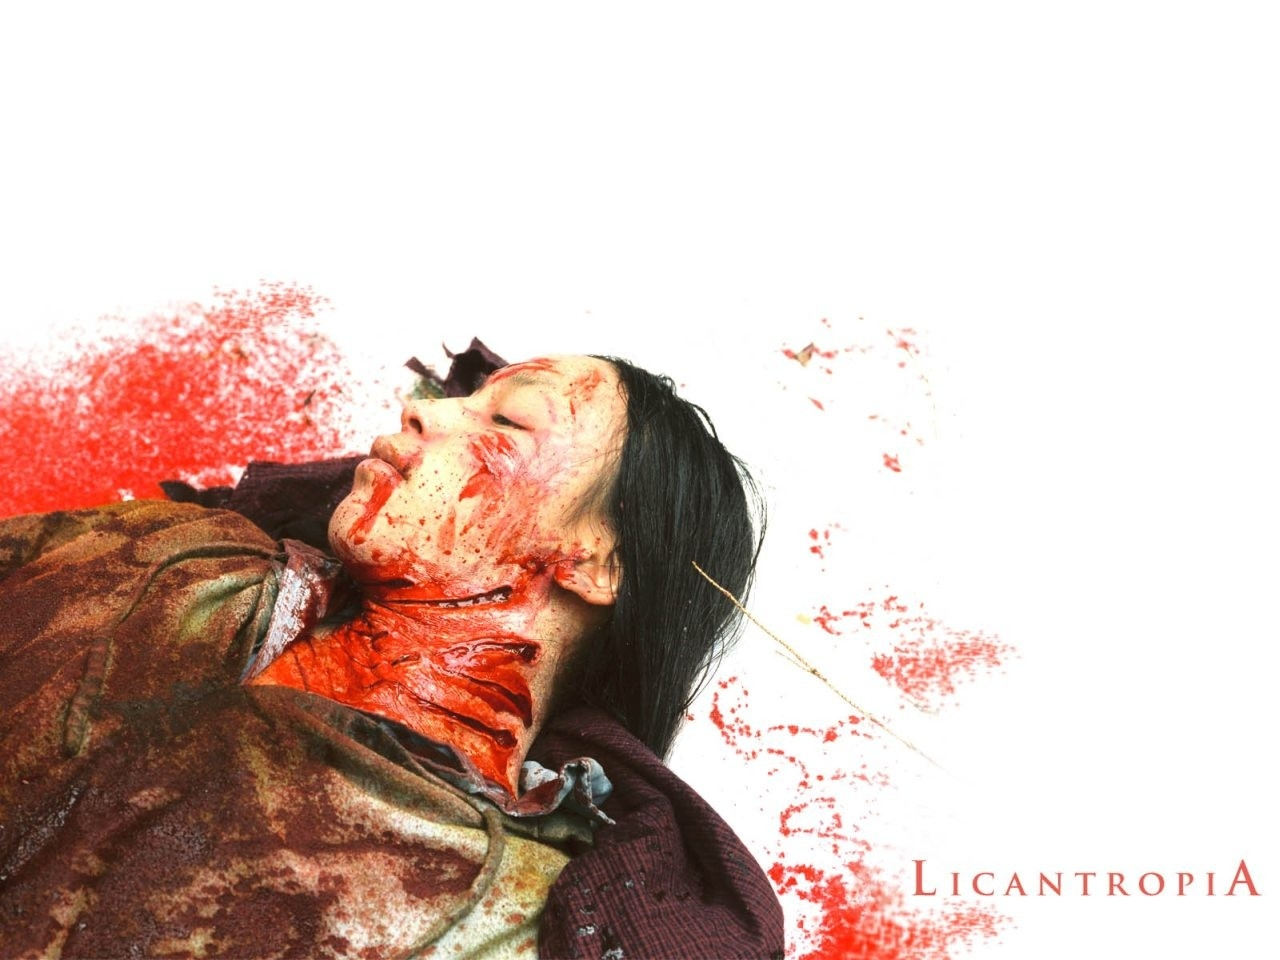 Wallpaper del film Licantropia